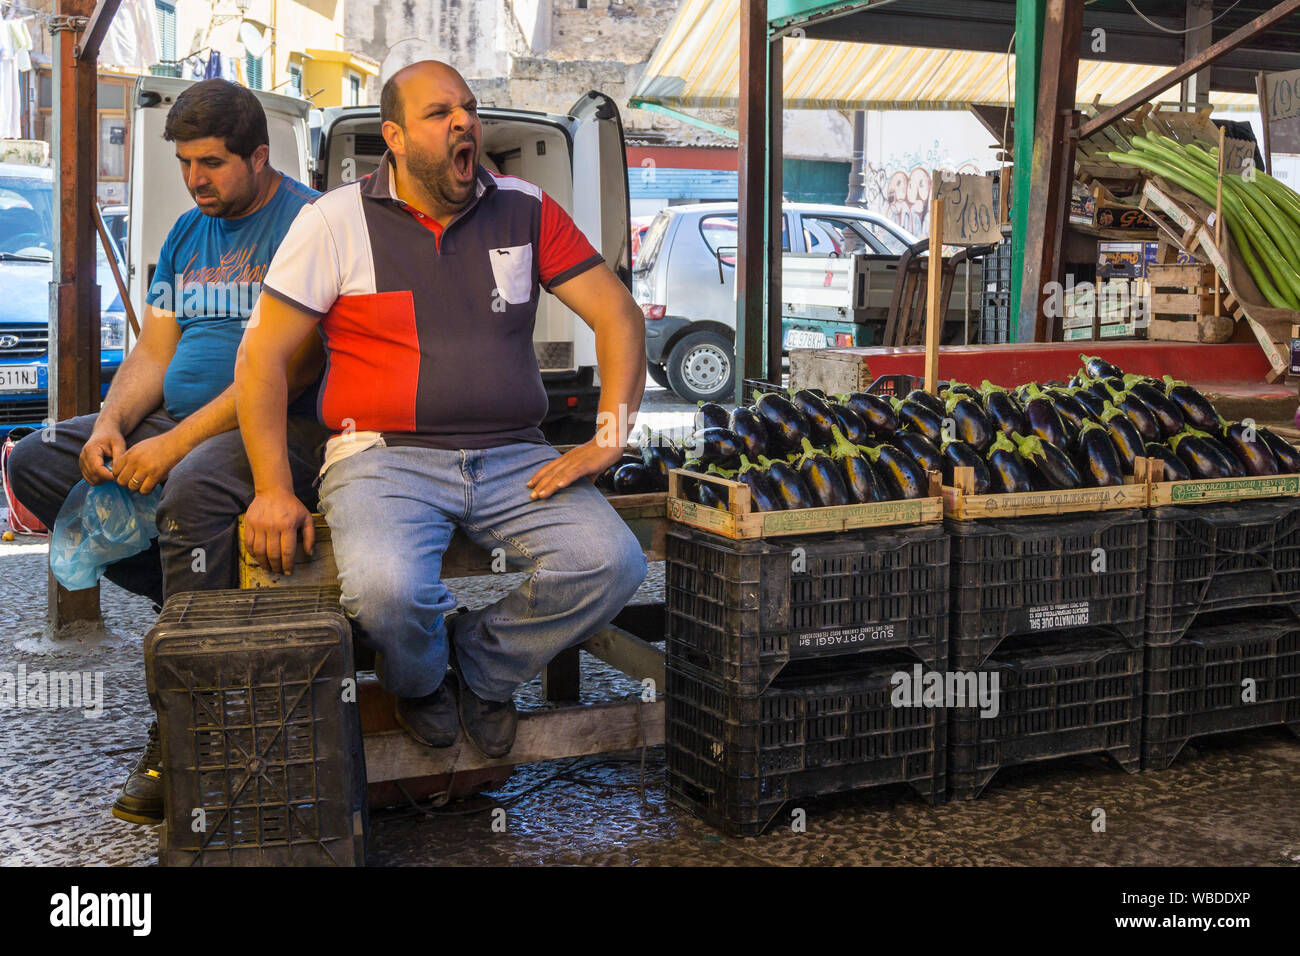 Aubergines for sale in the Ballaro Market in the Albergheria district of central Palermo, Sicily, Italy. Stock Photo